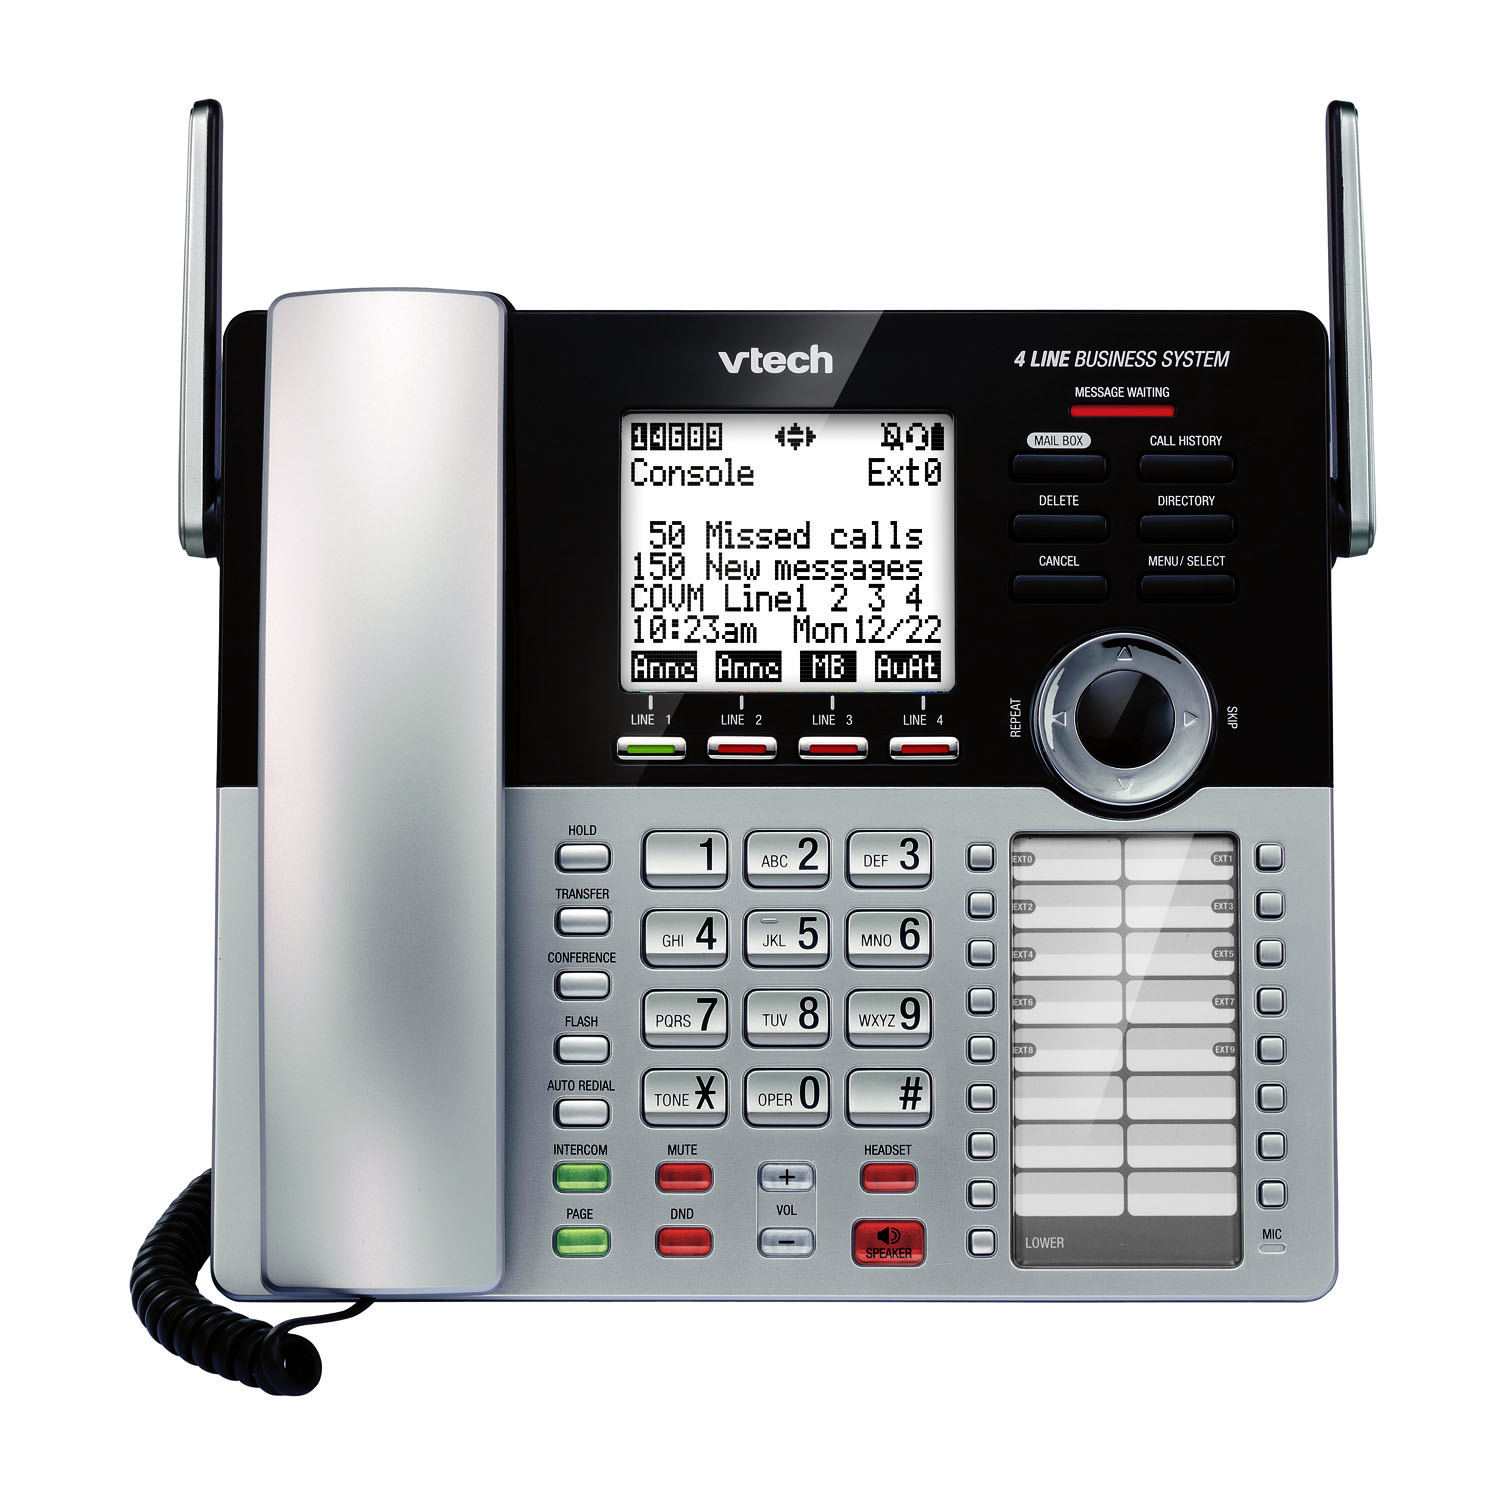 VTech 4 Line Small Business System Main Console